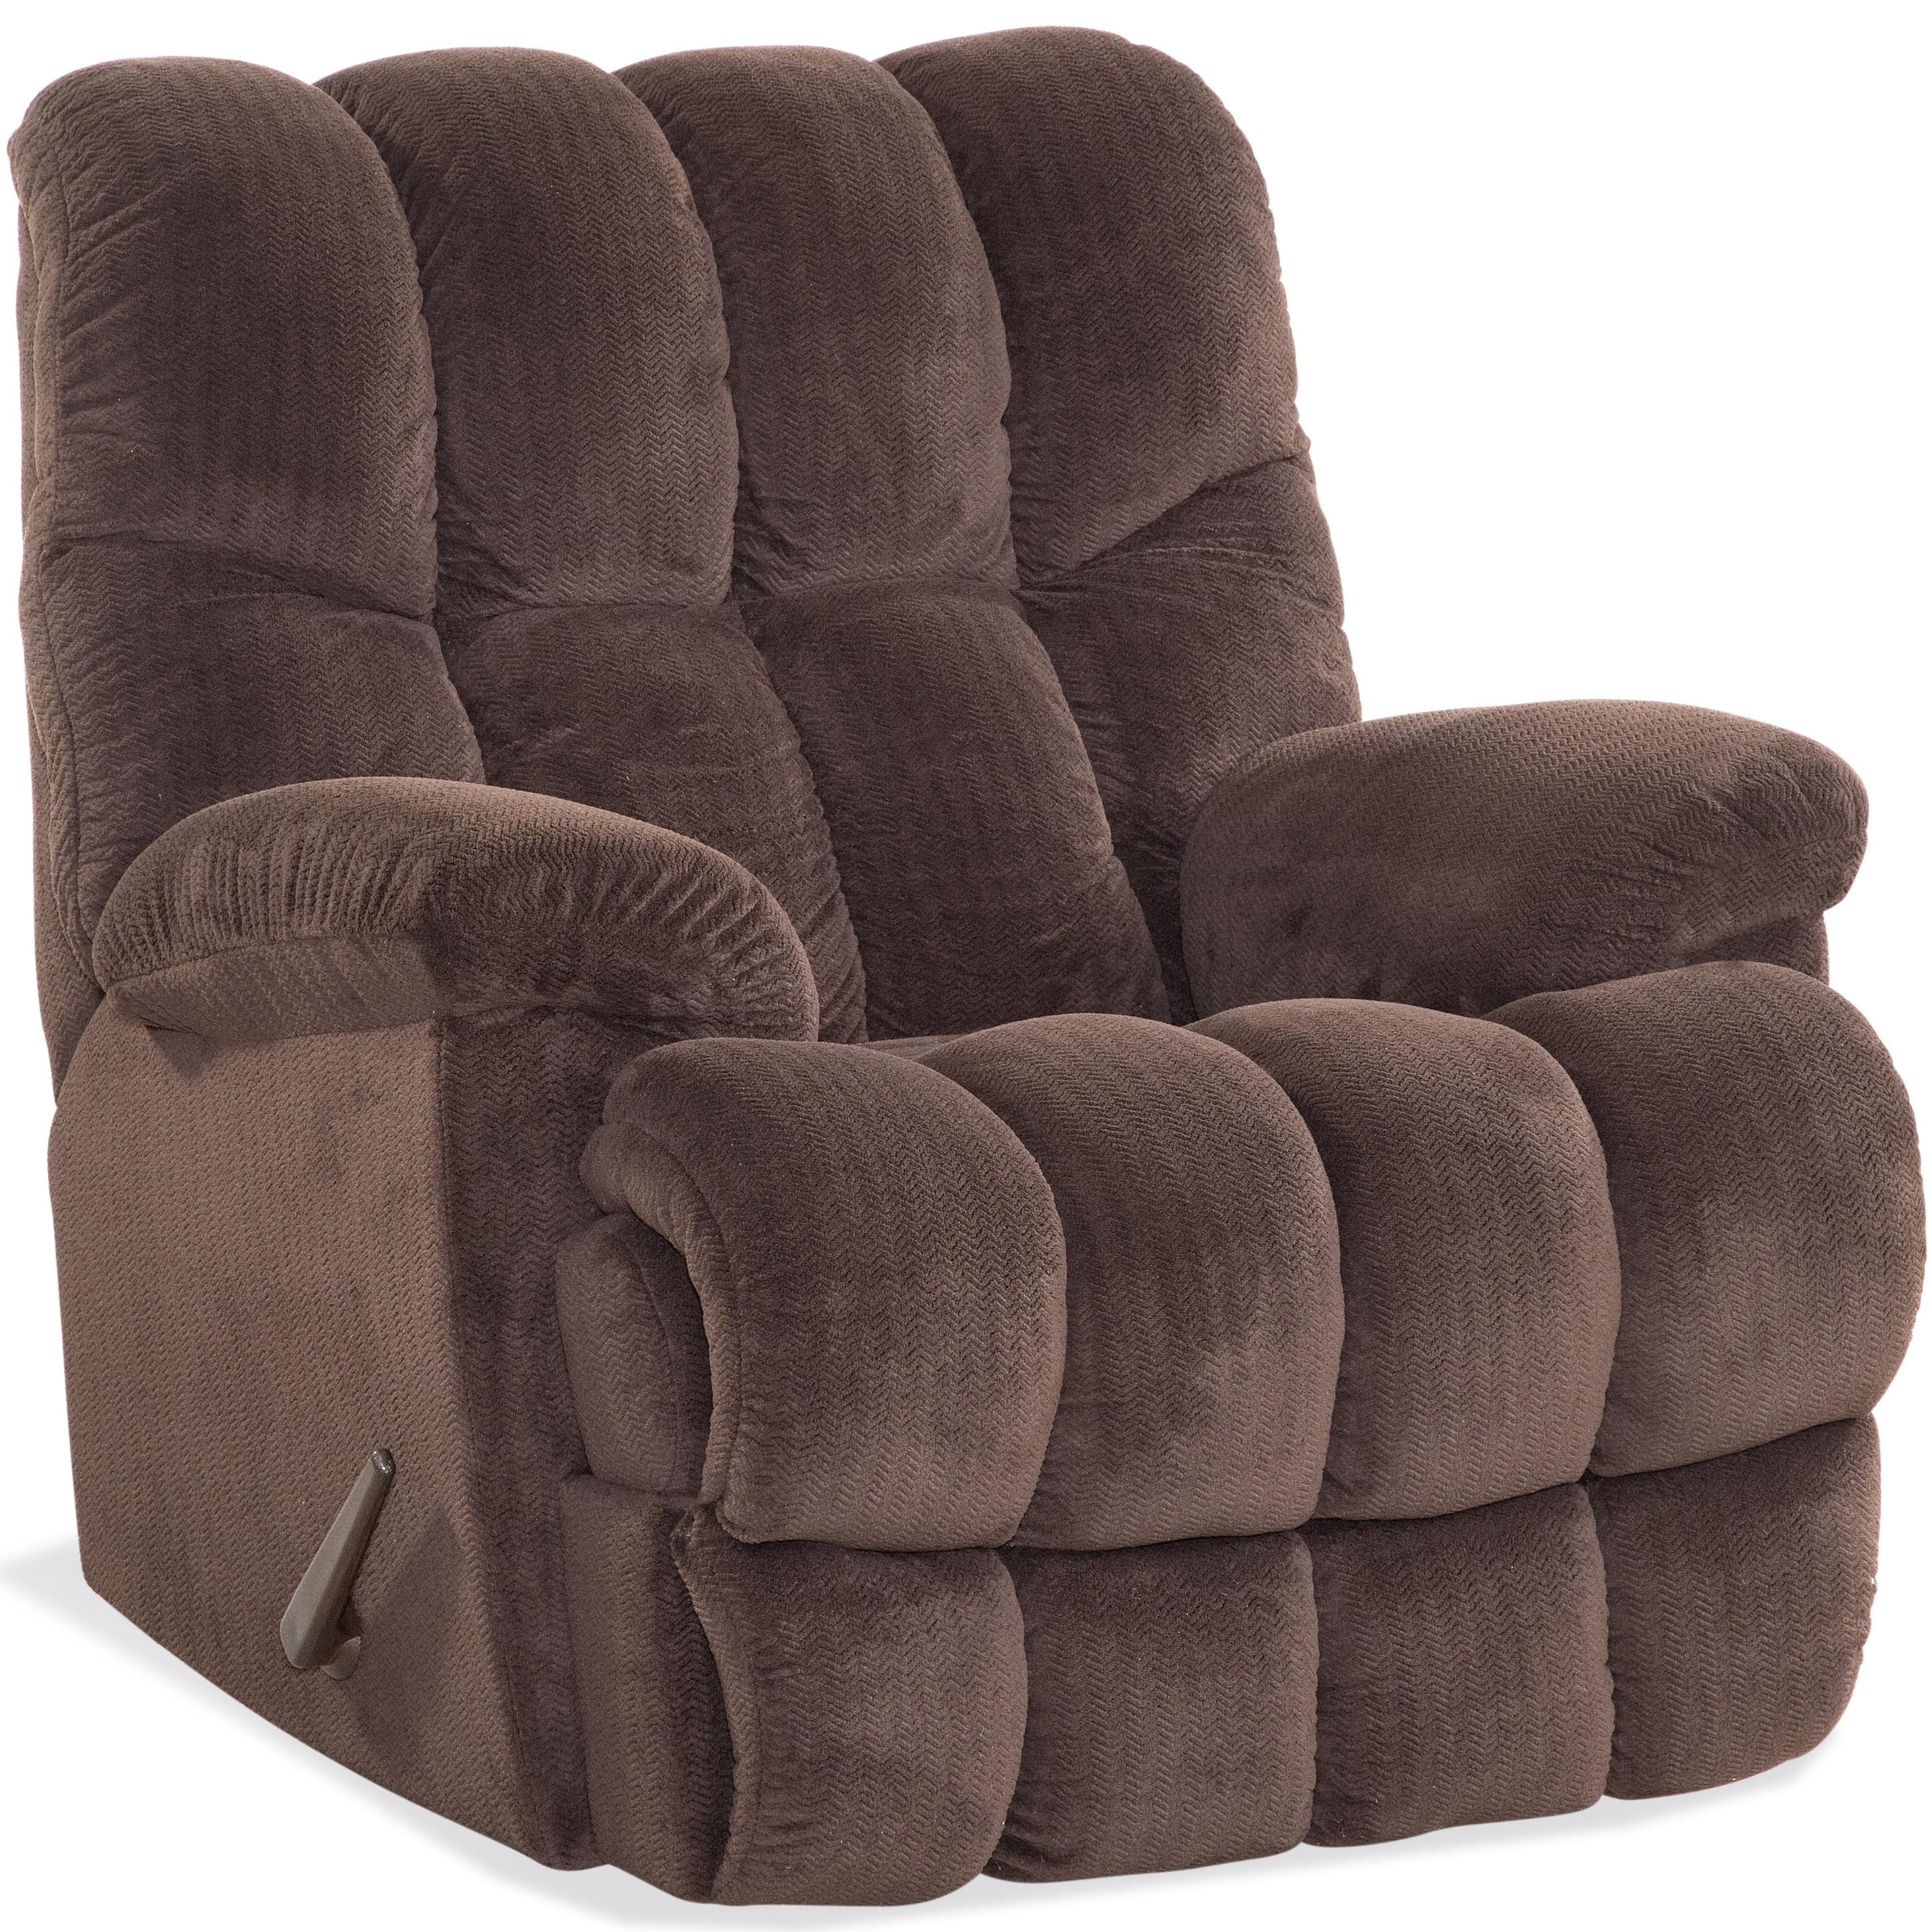 Comfort Living 121 Collection Casual Recliner - Item Number: 121-91-20